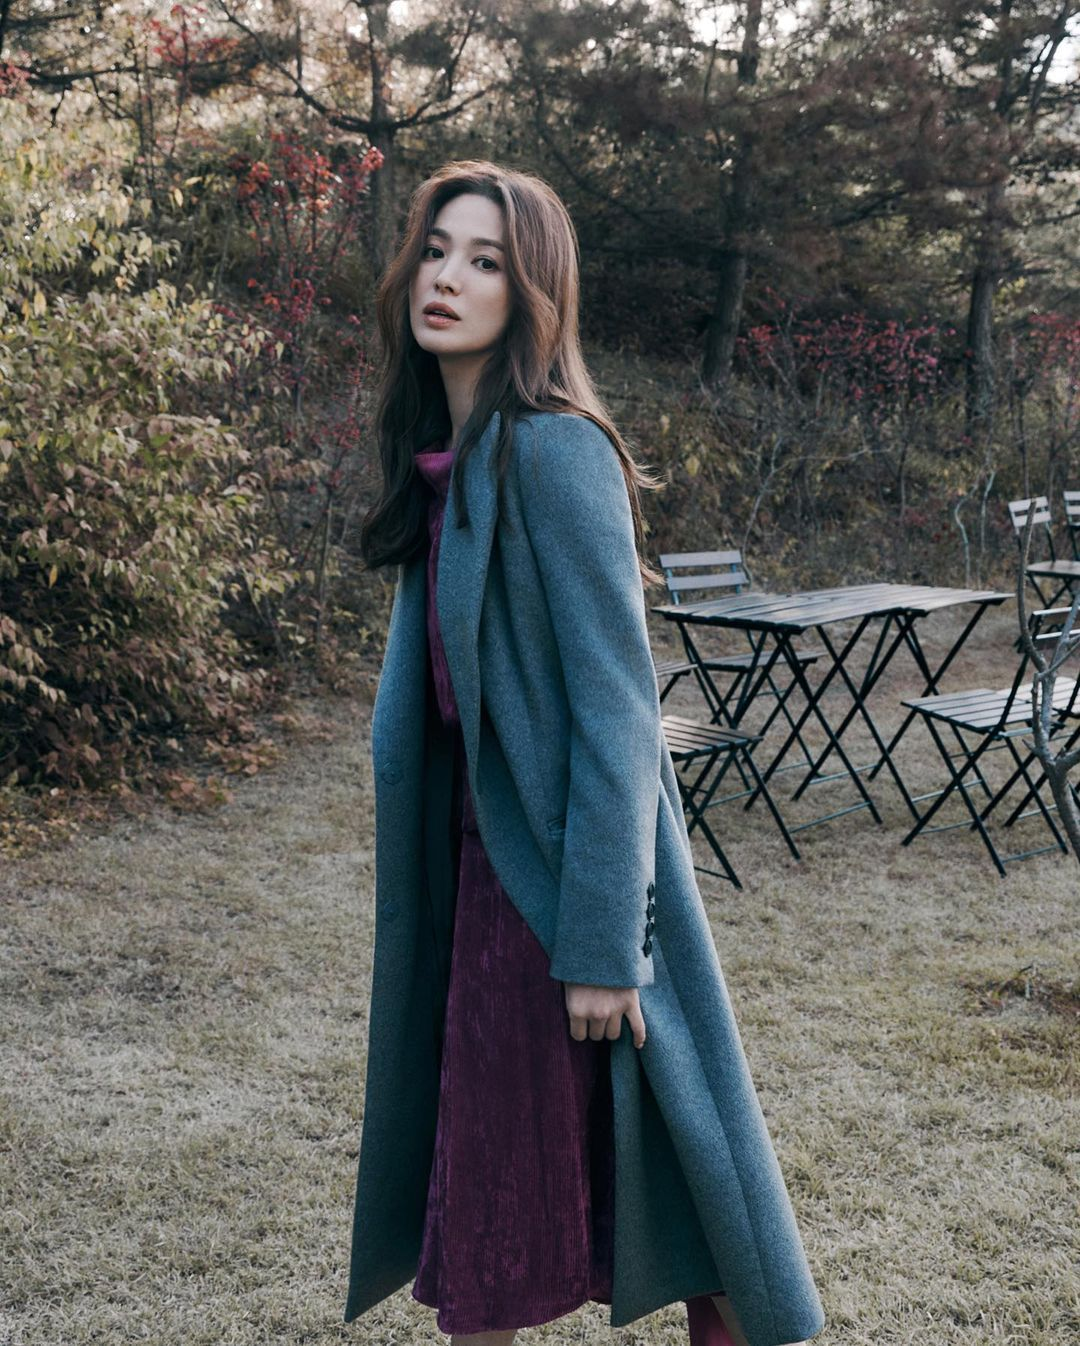 Song Hye Kyo 'became charming' with young love after divorce Song Joong Ki 2